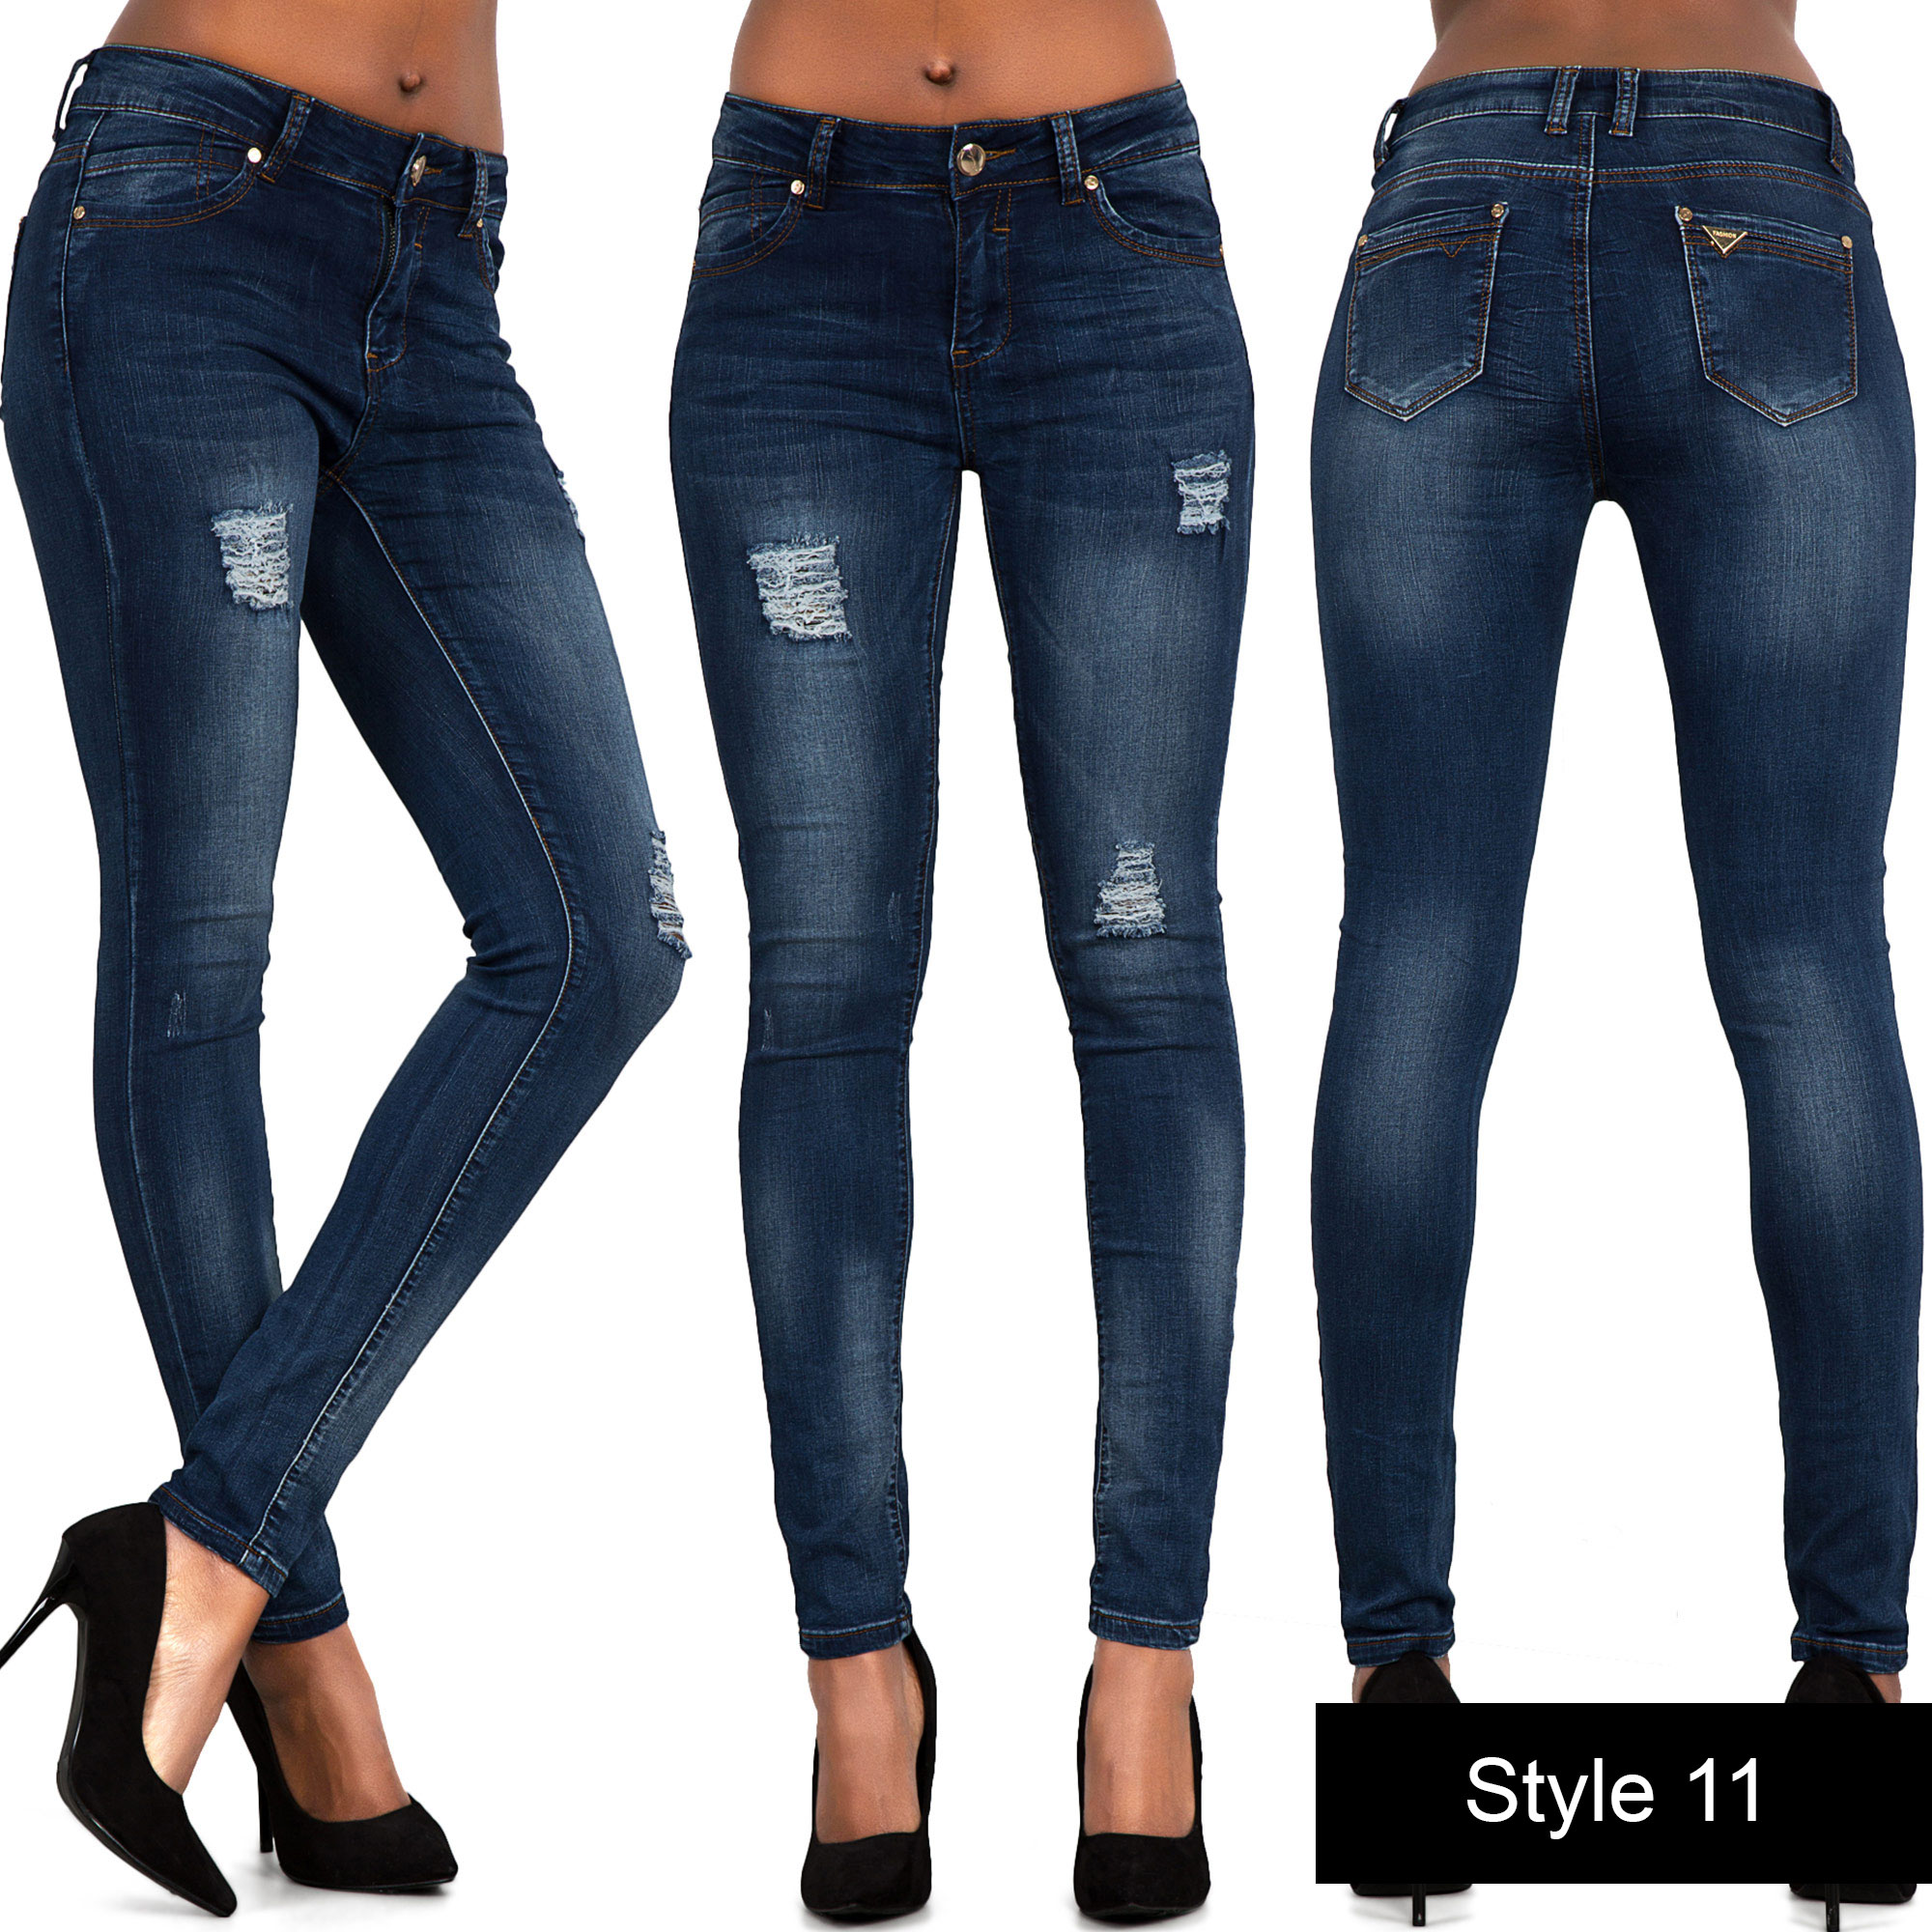 NEW WOMENS LADIES JEANS FADED SLIM FIT SKINNY DENIM SIZE 6 8 10 12 ...